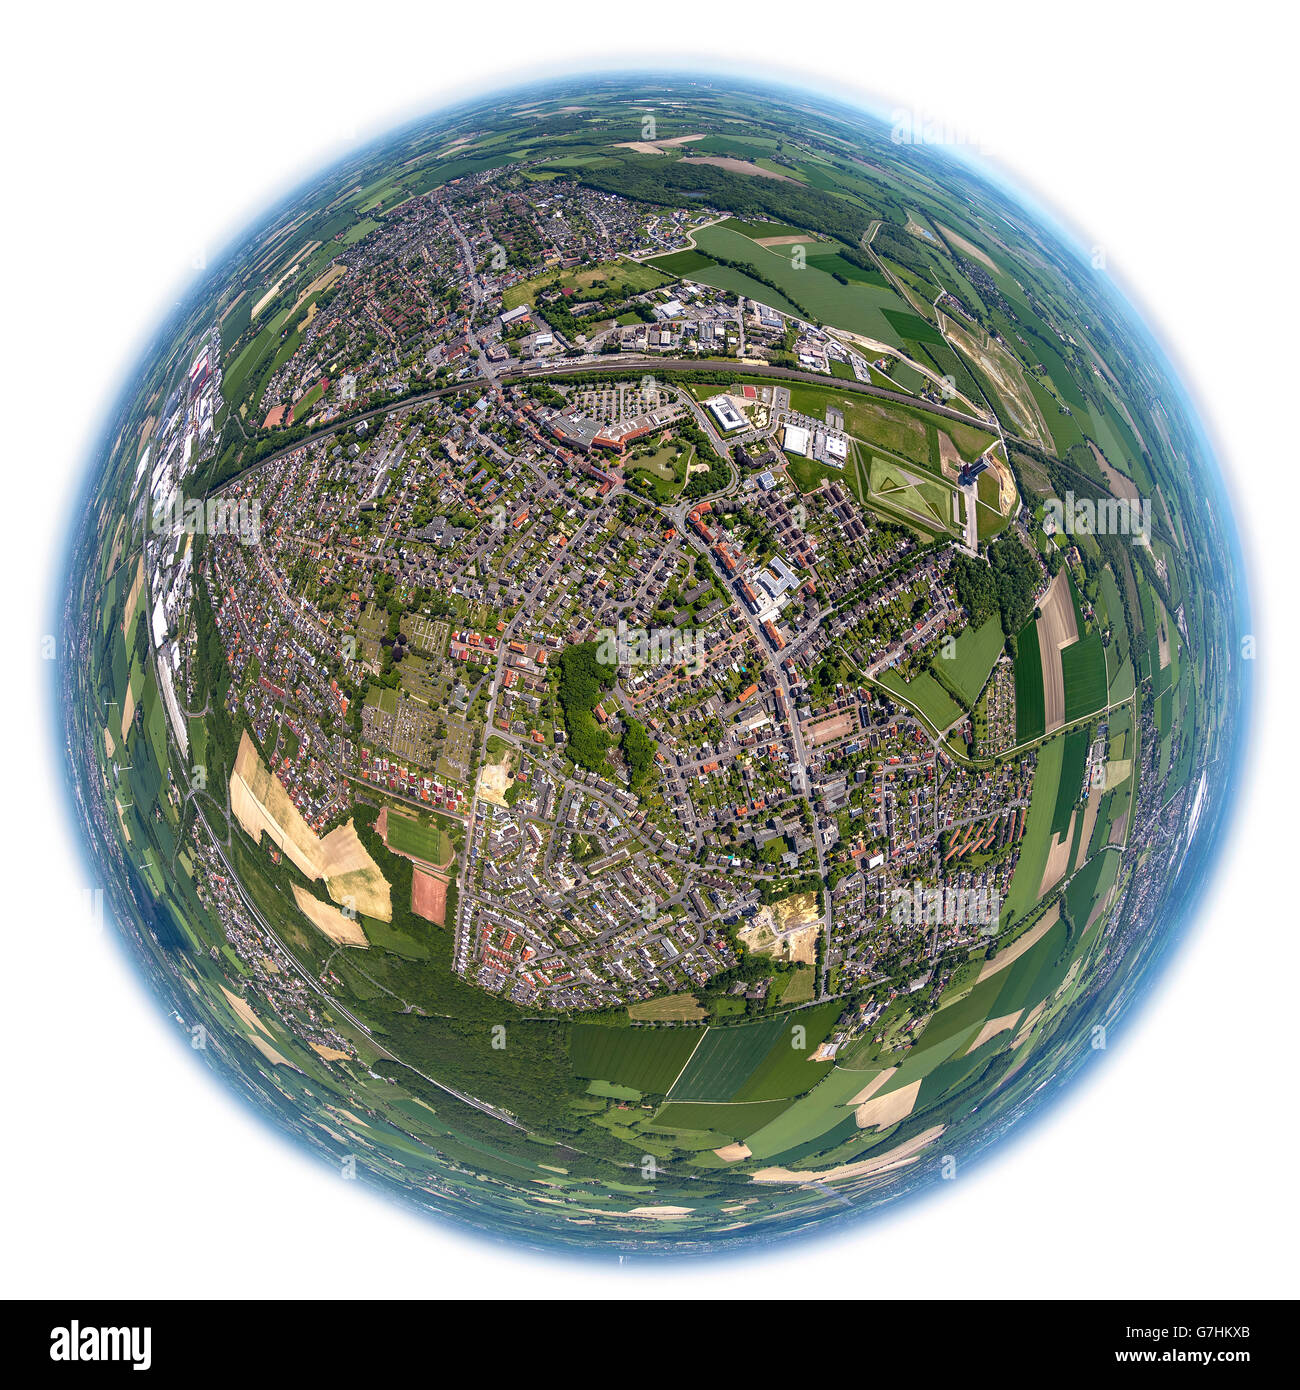 Aerial view, fisheye optics, fisheye lens, overview Bönen, Bönen, Ruhr region, North Rhine Westphalia, Germany, Stock Photo